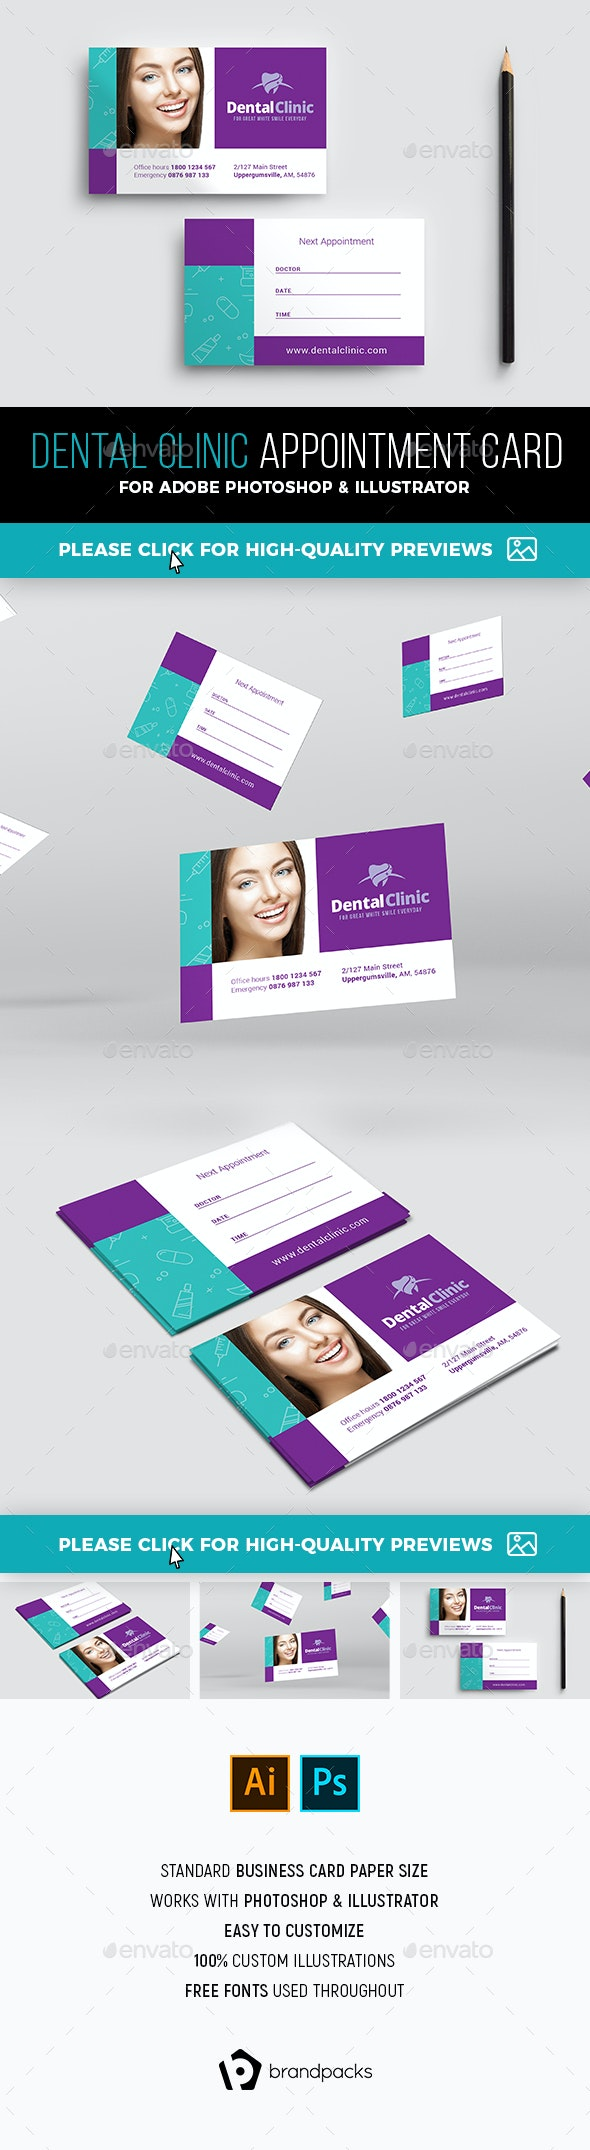 Dental Clinic Appointment Card Template - Industry Specific Business Cards